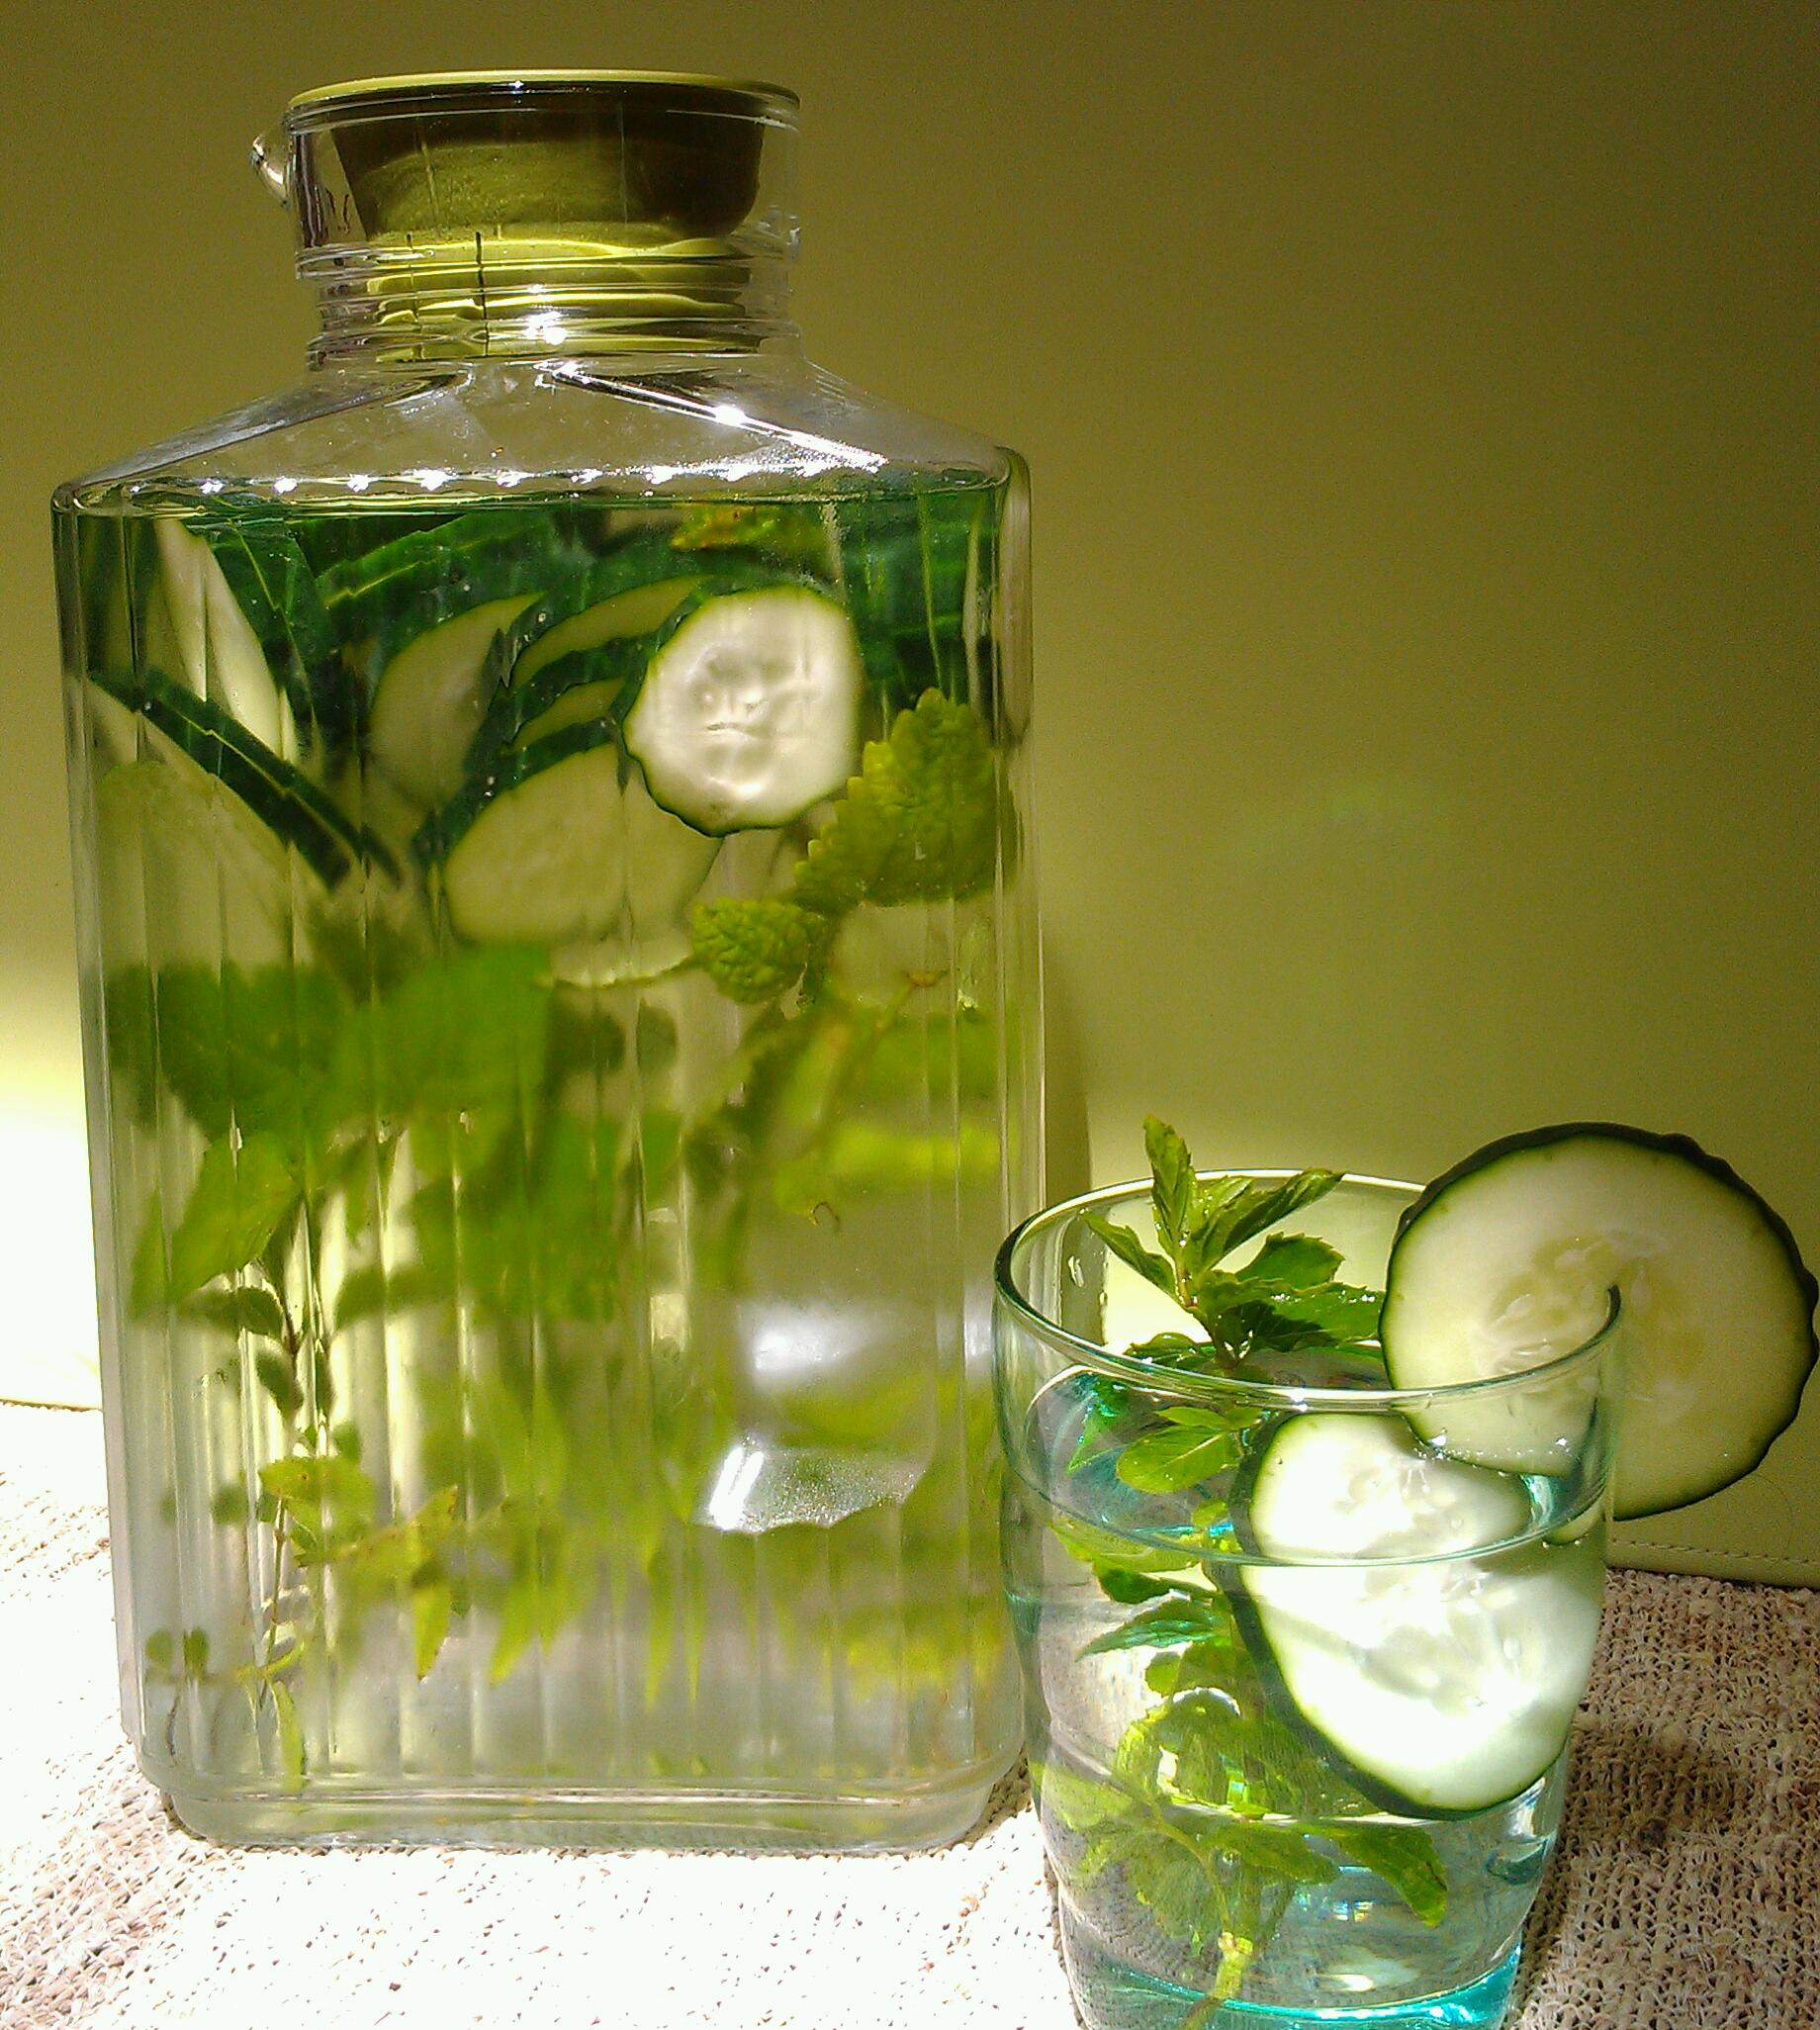 Cool Down with Refreshing Cucumber-Mint Medley Spa Water